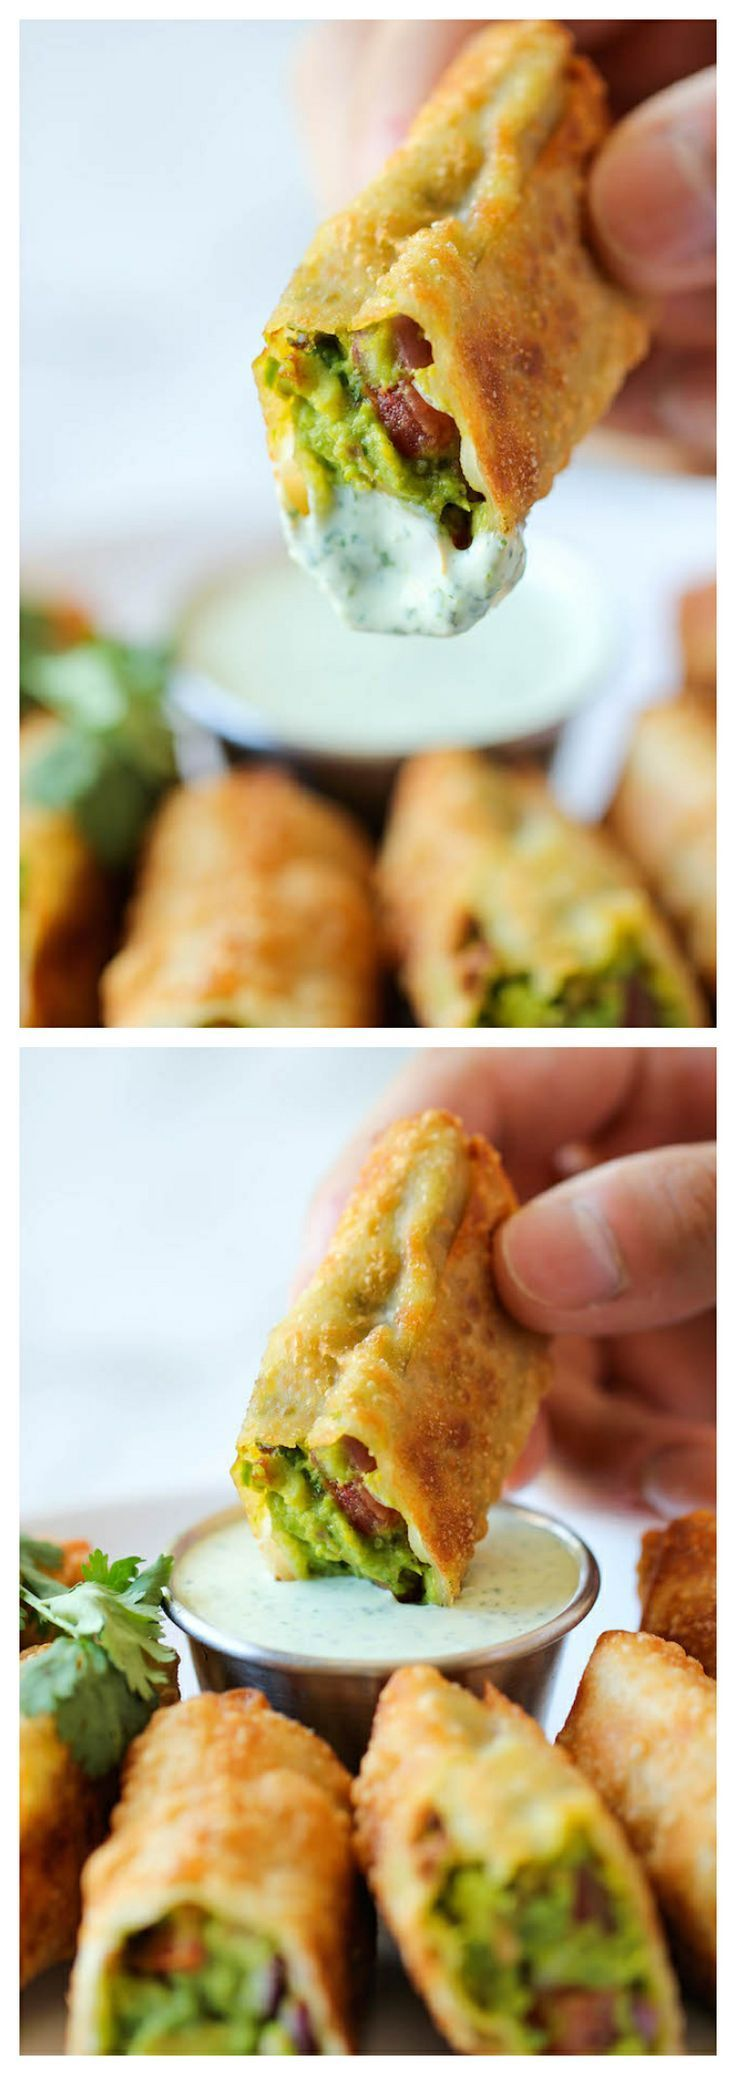 Cheesecake Factory Avocado Egg Rolls ~ Cheesecake and avocado egg rolls are perfect appetizers. Of course, you will not prepare it every day, but it will be amazingly good for a big family gathering or celebration.